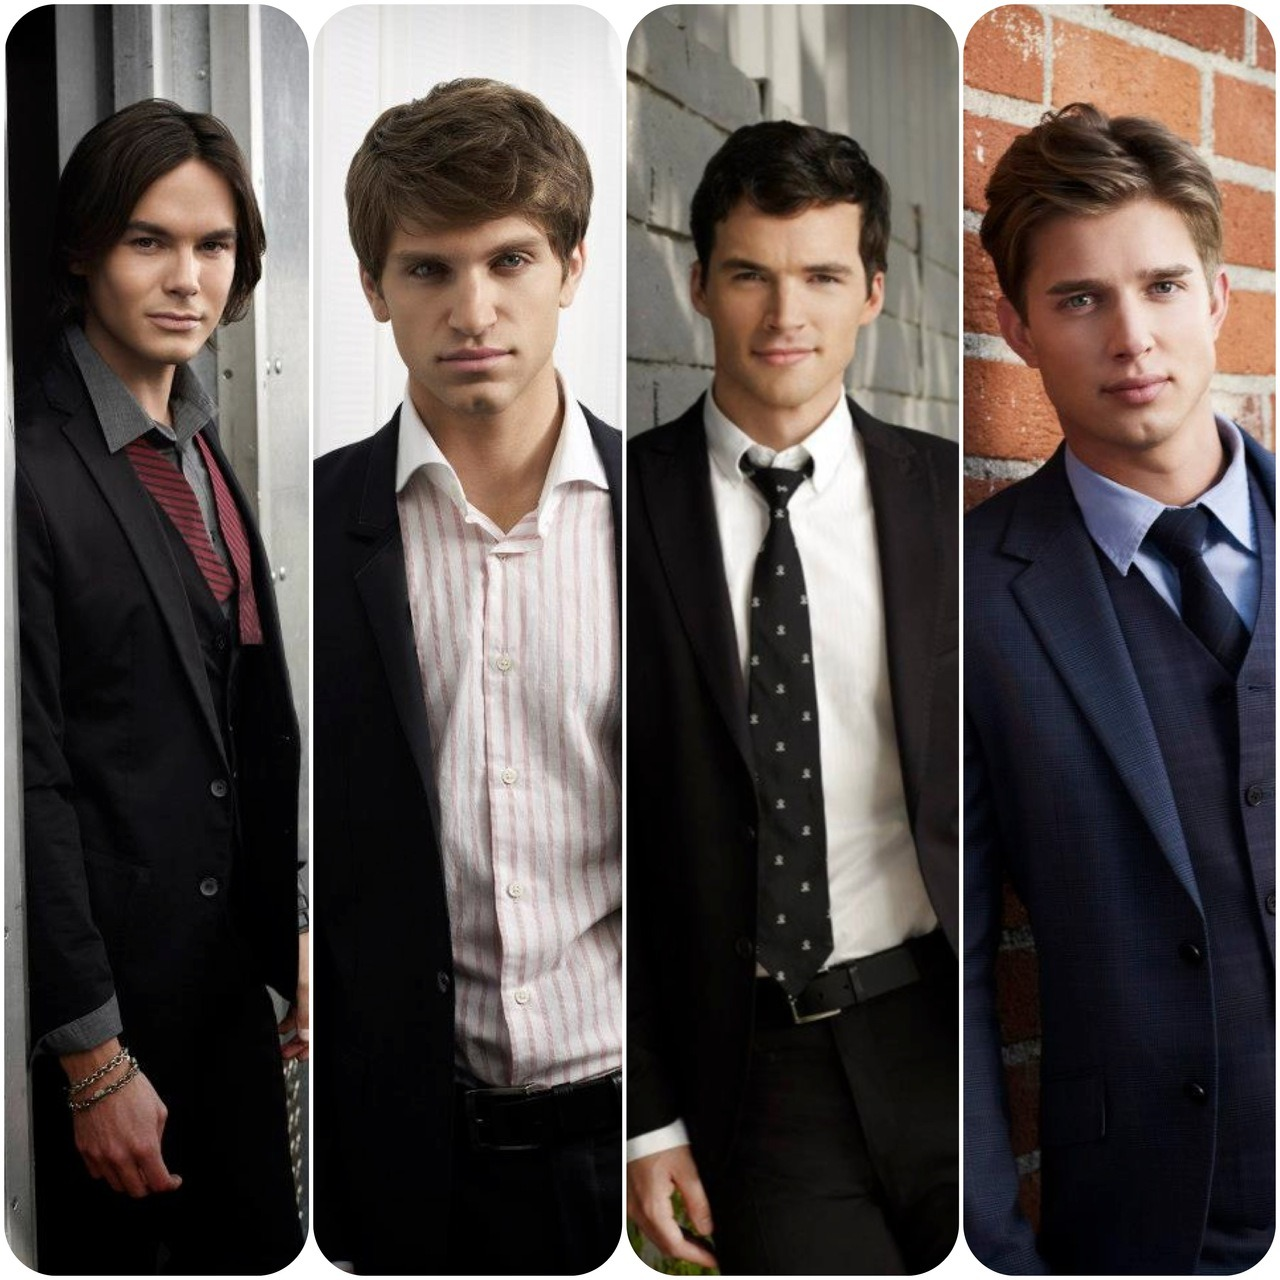 prettylittleliars-onabcfamily:  Re-blog if you love the guys of PLL!